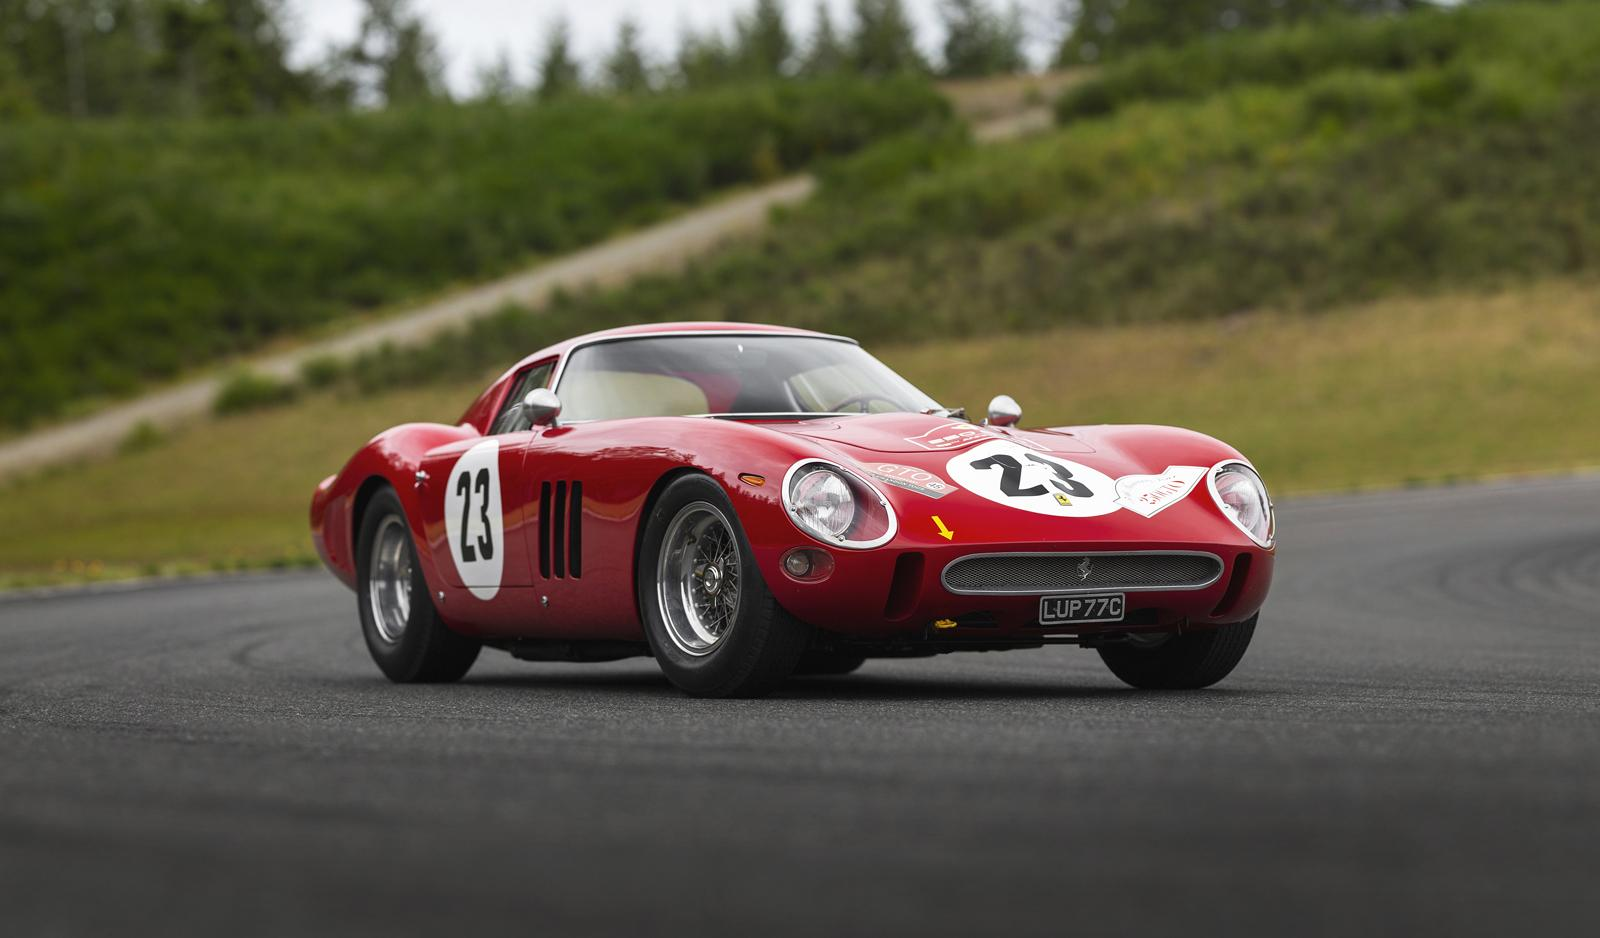 1962 ex-Phil Hill Ferrari 250 GTO sells for world record $48.4m!